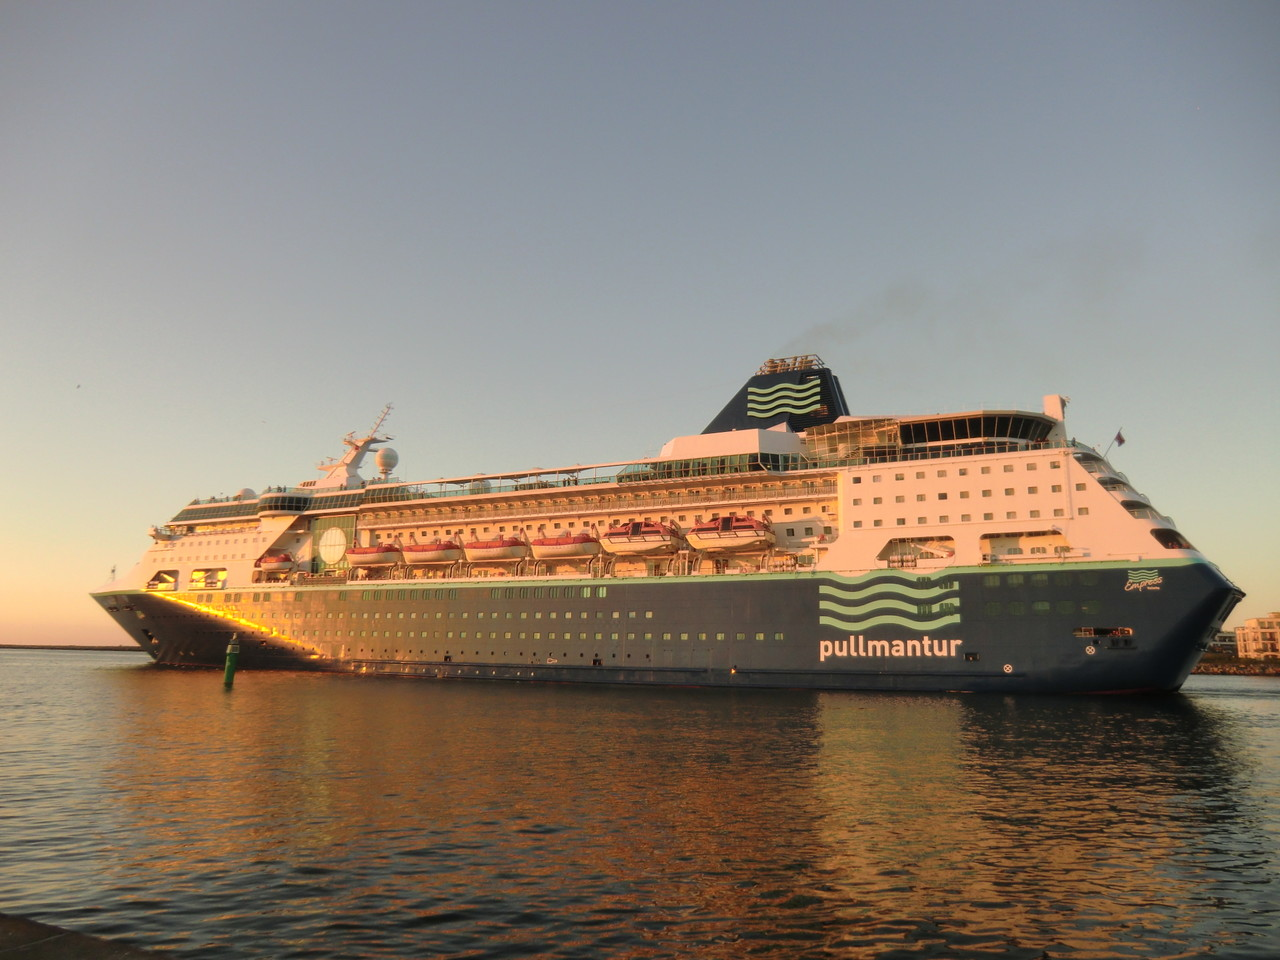 Pullmantur in der Abendsonne